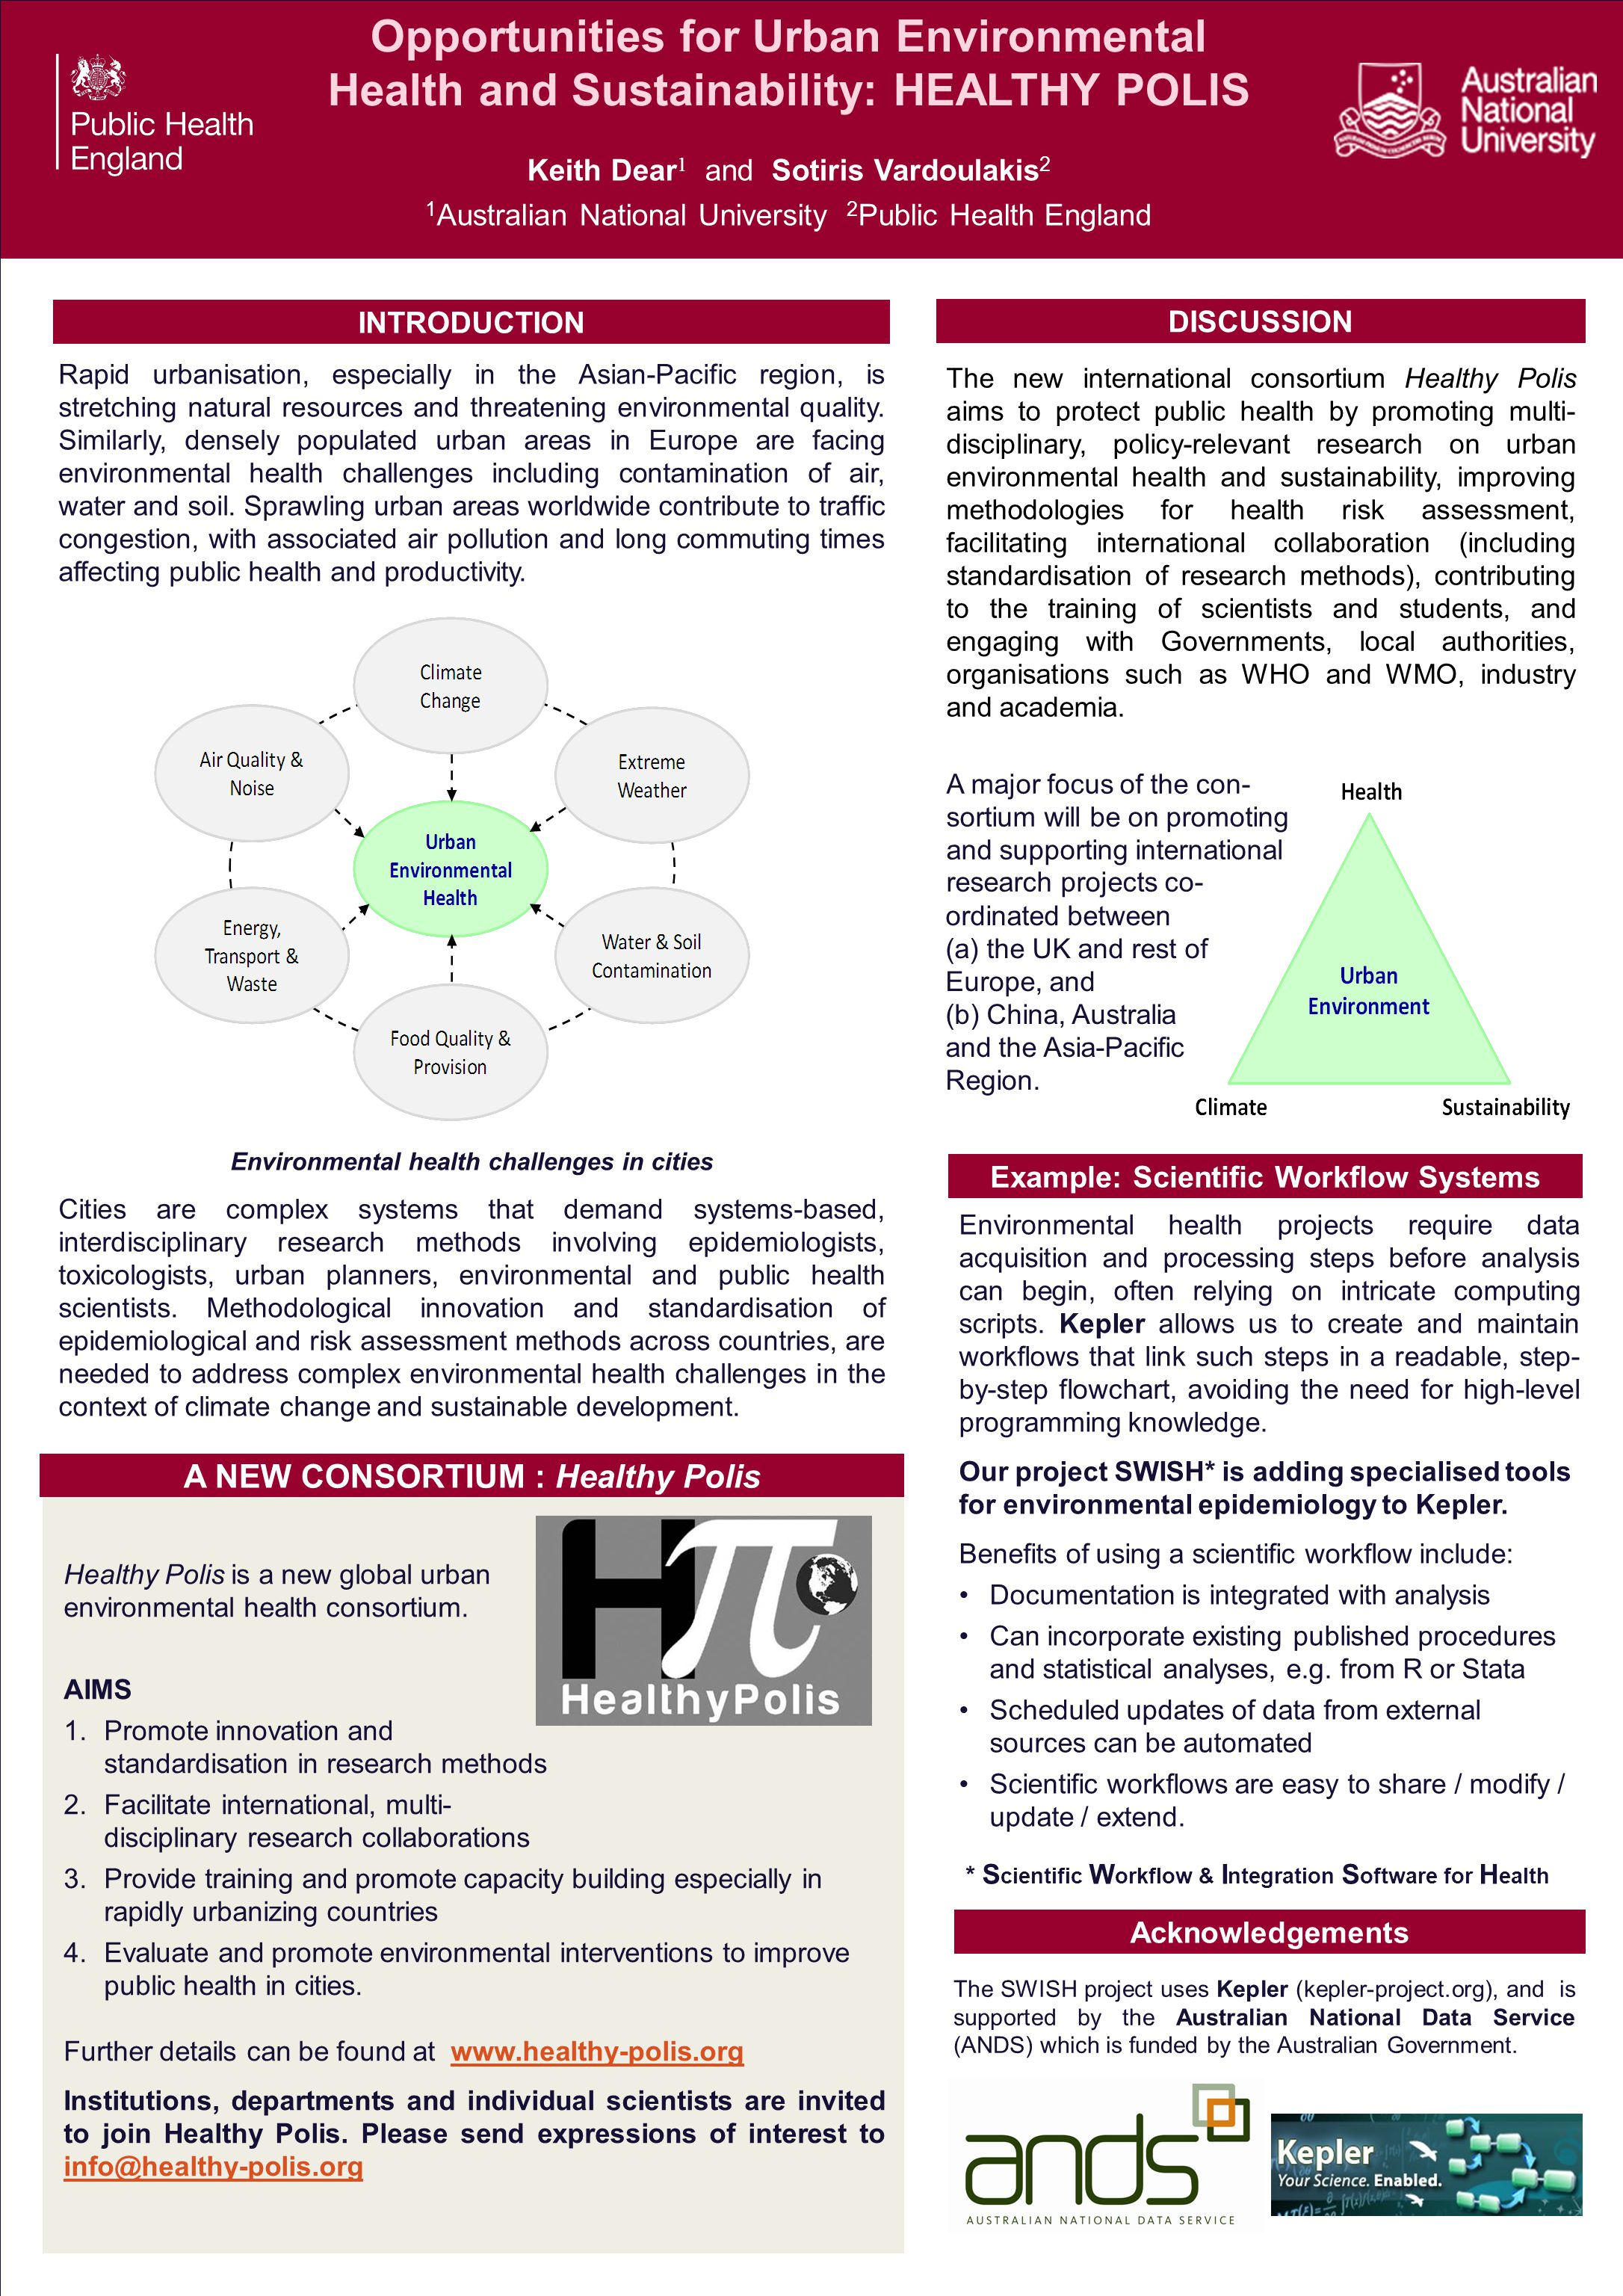 Opportunities for Urban Environmental Health and Sustainability: HEALTHY POLIS Keith Dear 1 and Sotiris Vardoulakis 2 1 Australian National University